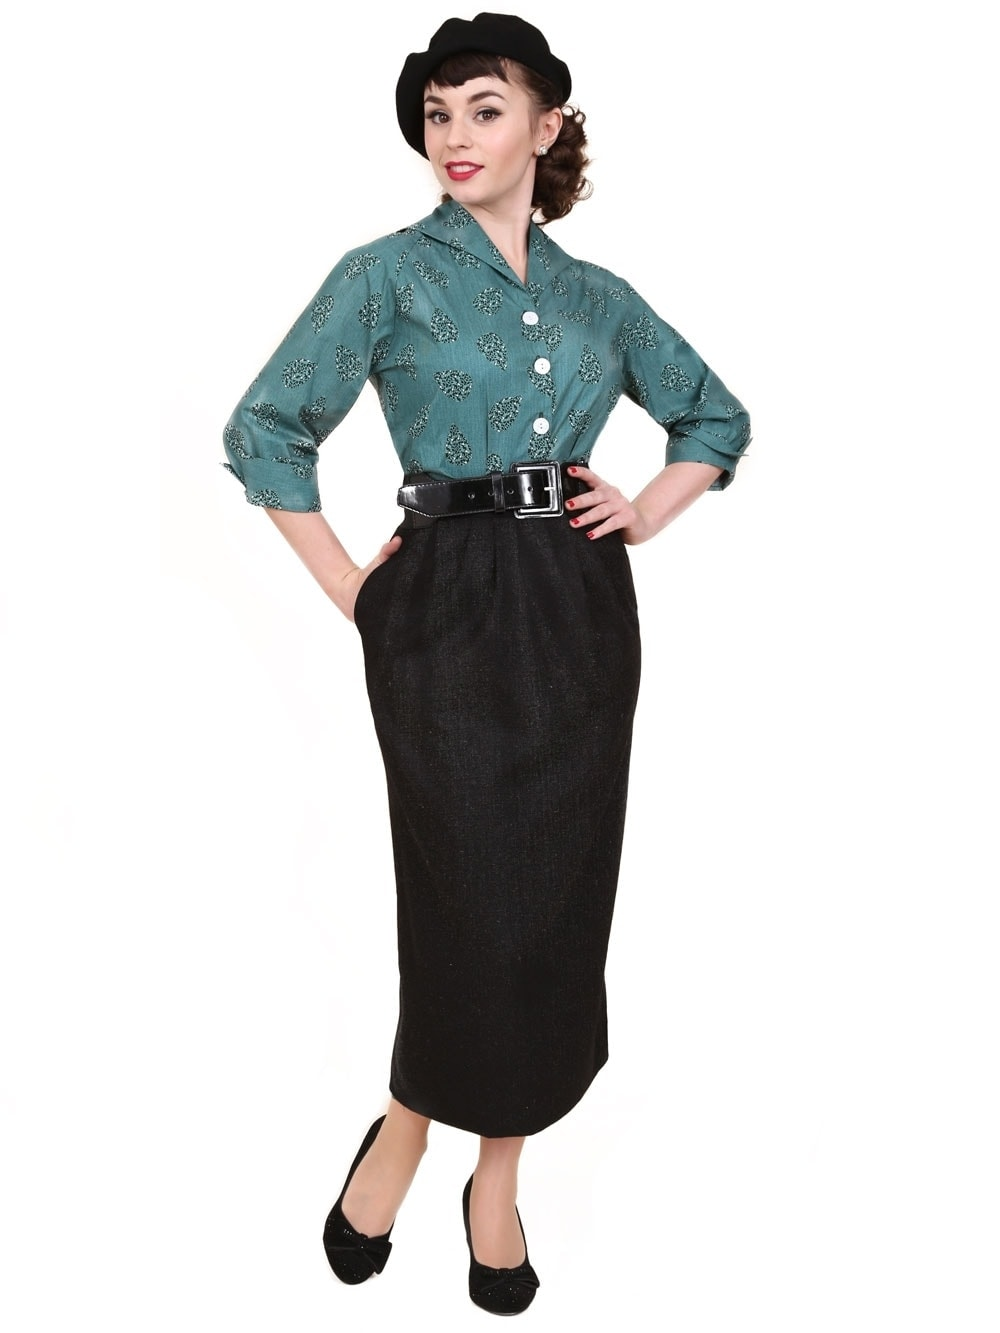 Pencil skirt with pockets | Global trend skirt blog